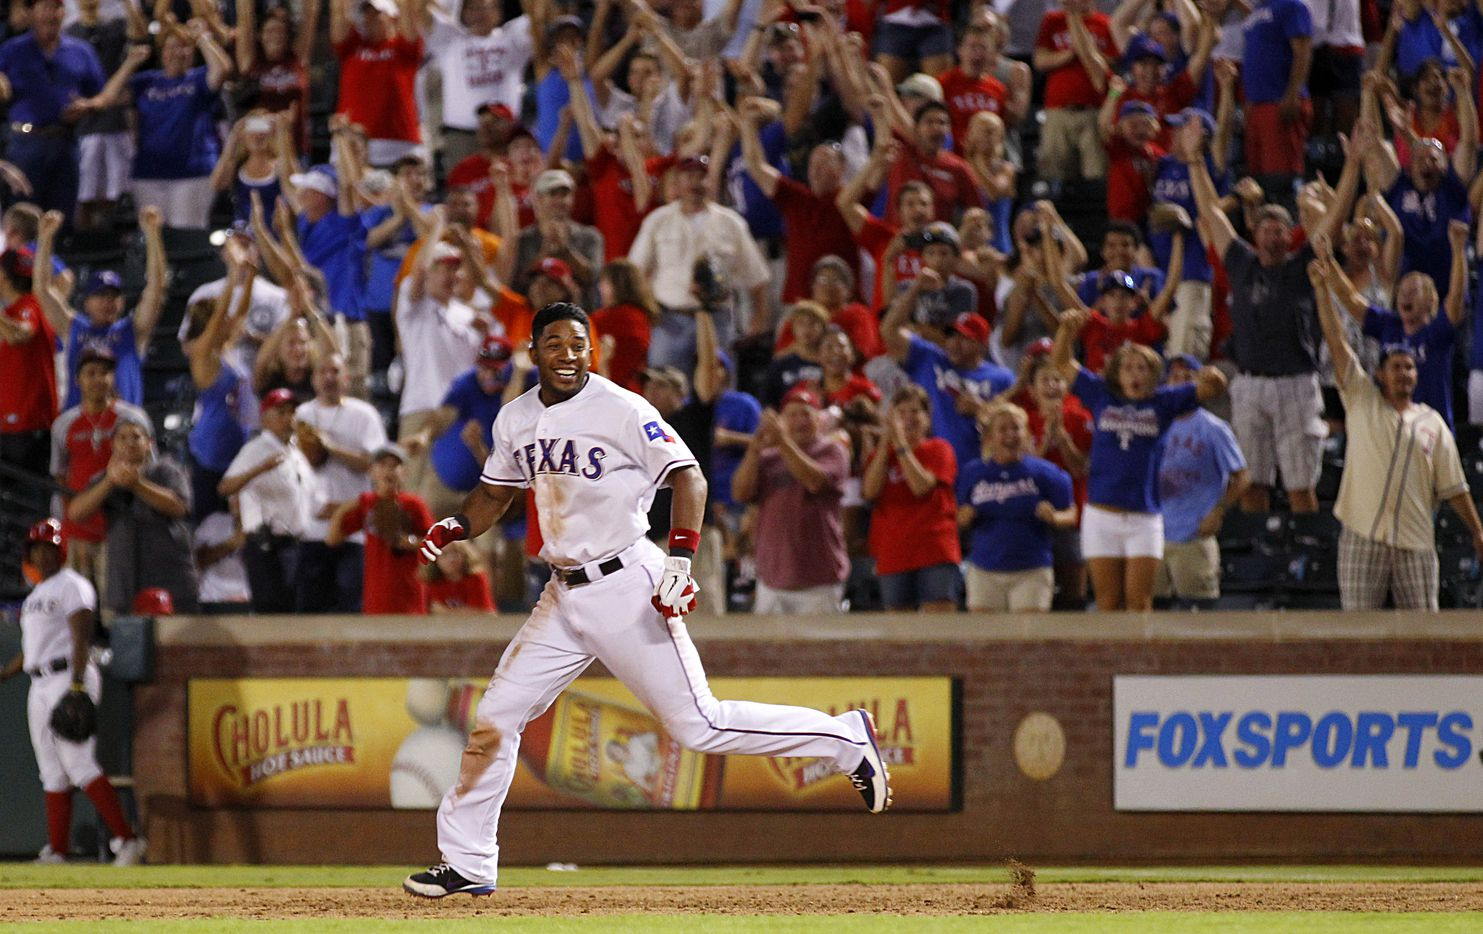 Texas Rangers Elvis Andrus celebrates his game winning hit, a two-run single, to win the game 11-10 in the bottom of the 10th inning against the Los Angeles Angels at the Rangers Ballpark in Arlington, Wednesday, August 1, 2012. (Tom Fox/The Dallas Morning News)